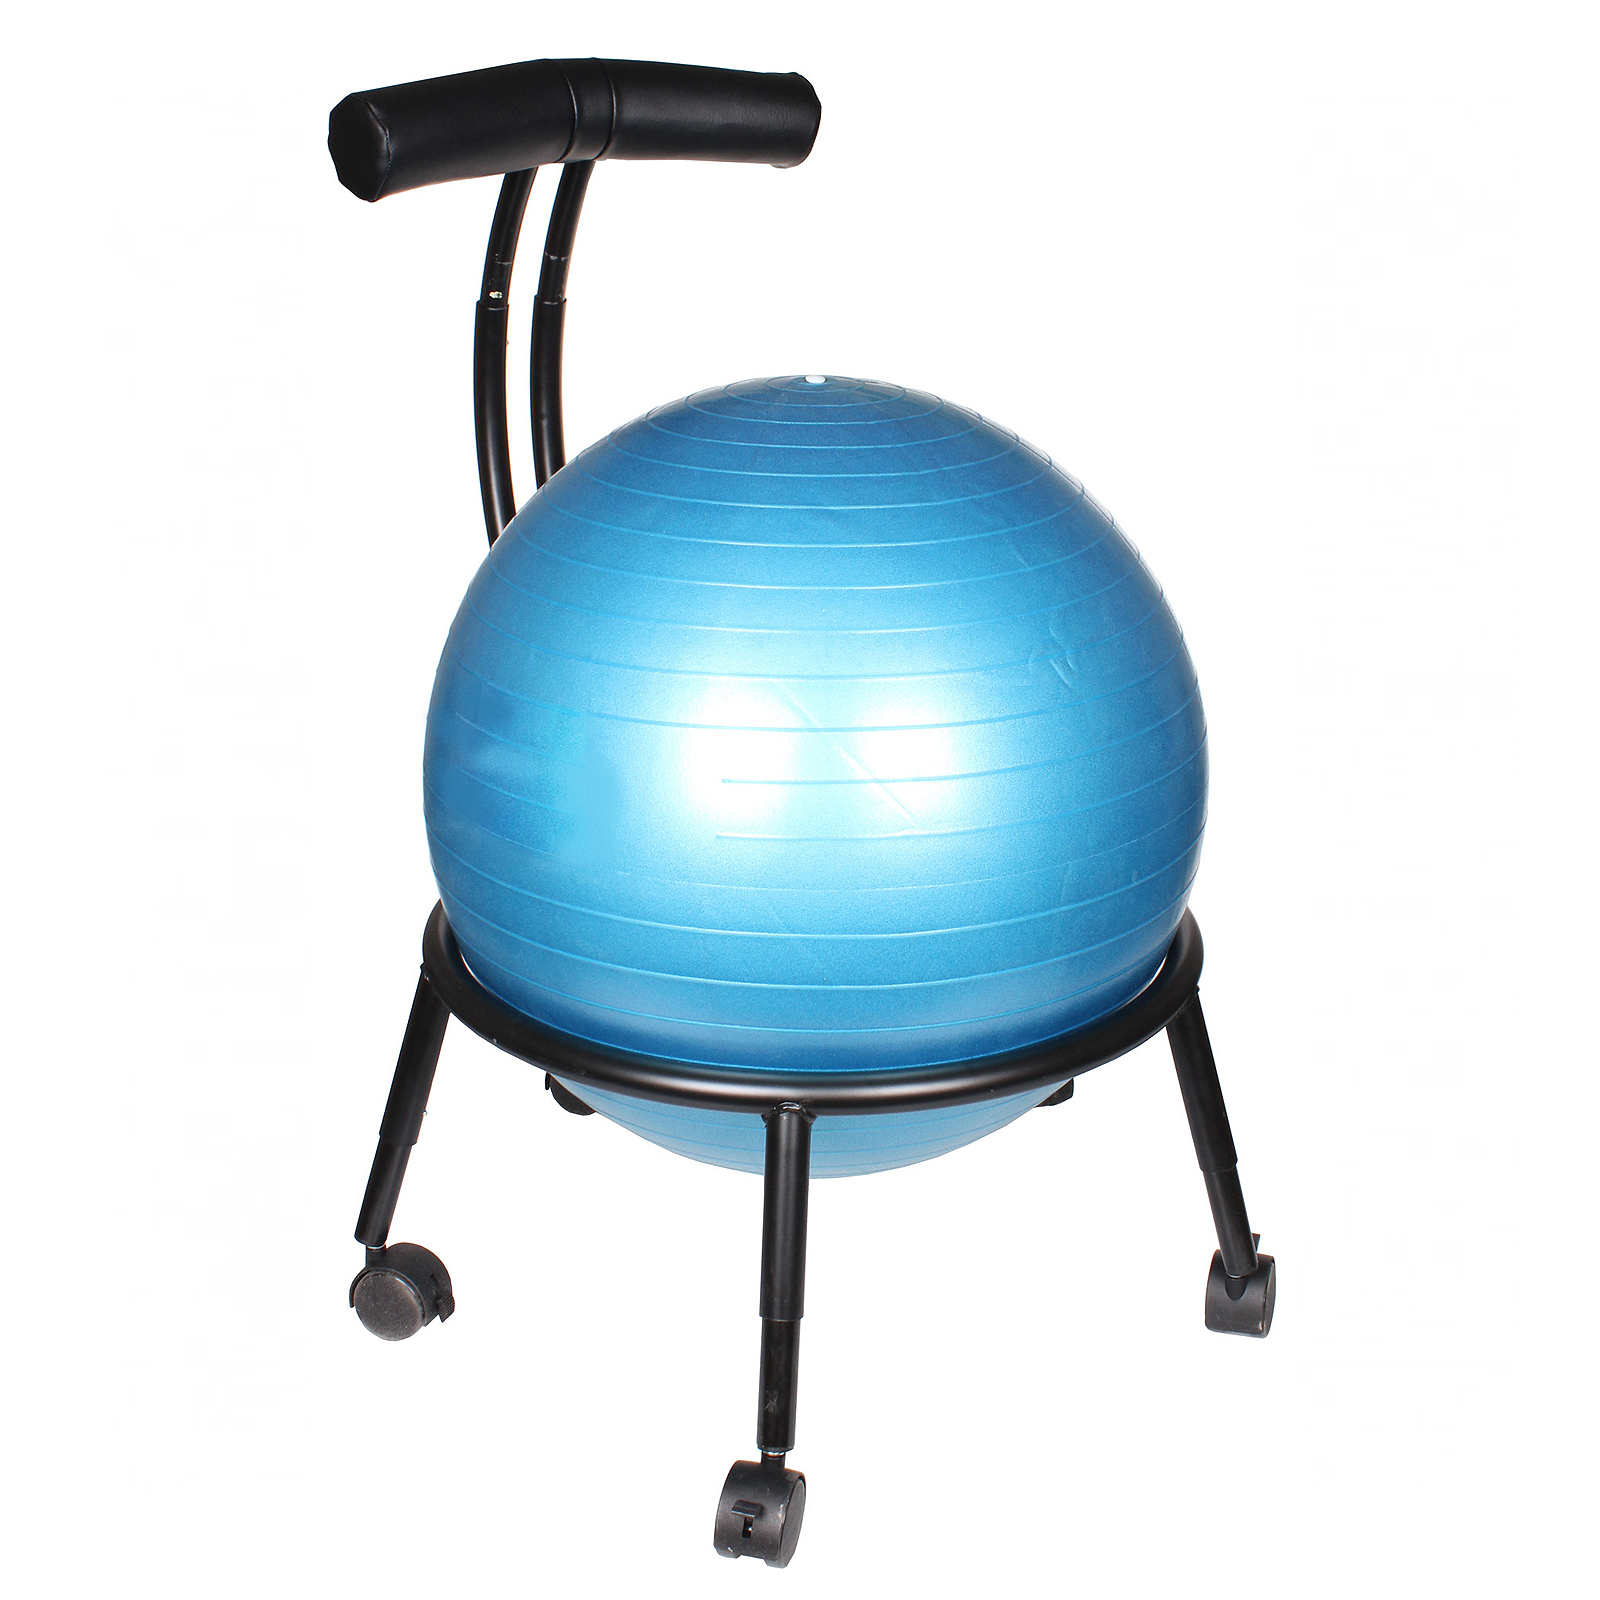 Ball Chair Benefits Yoga Studio Pilates Stability Balance Ball Office